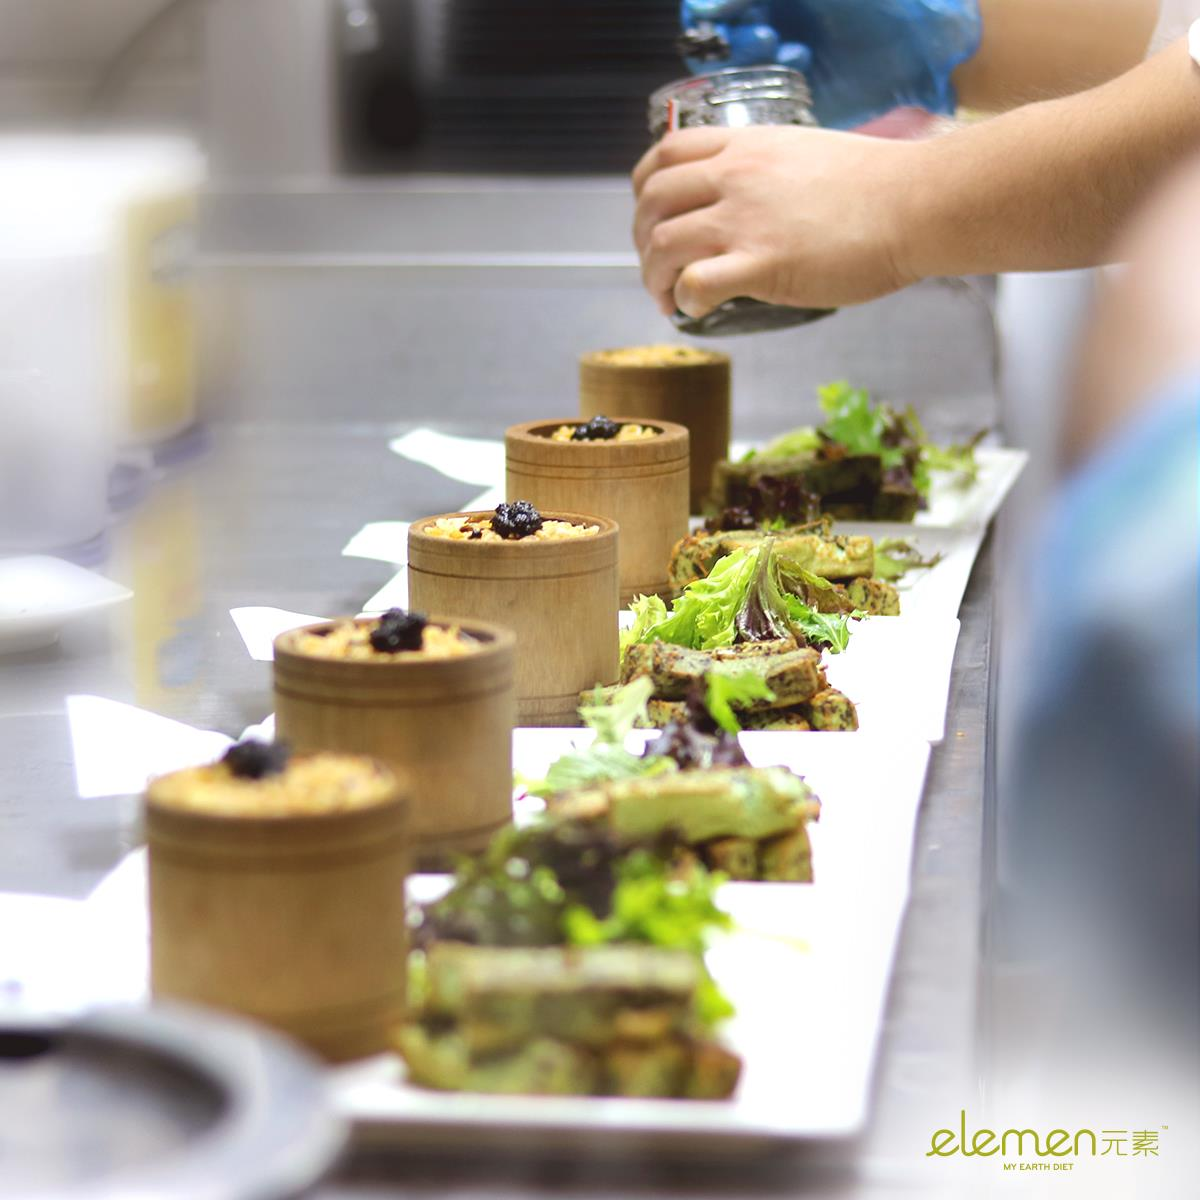 Hotspots-for-vegetarians-venuerific-singapore-elemen-wild-mushroom